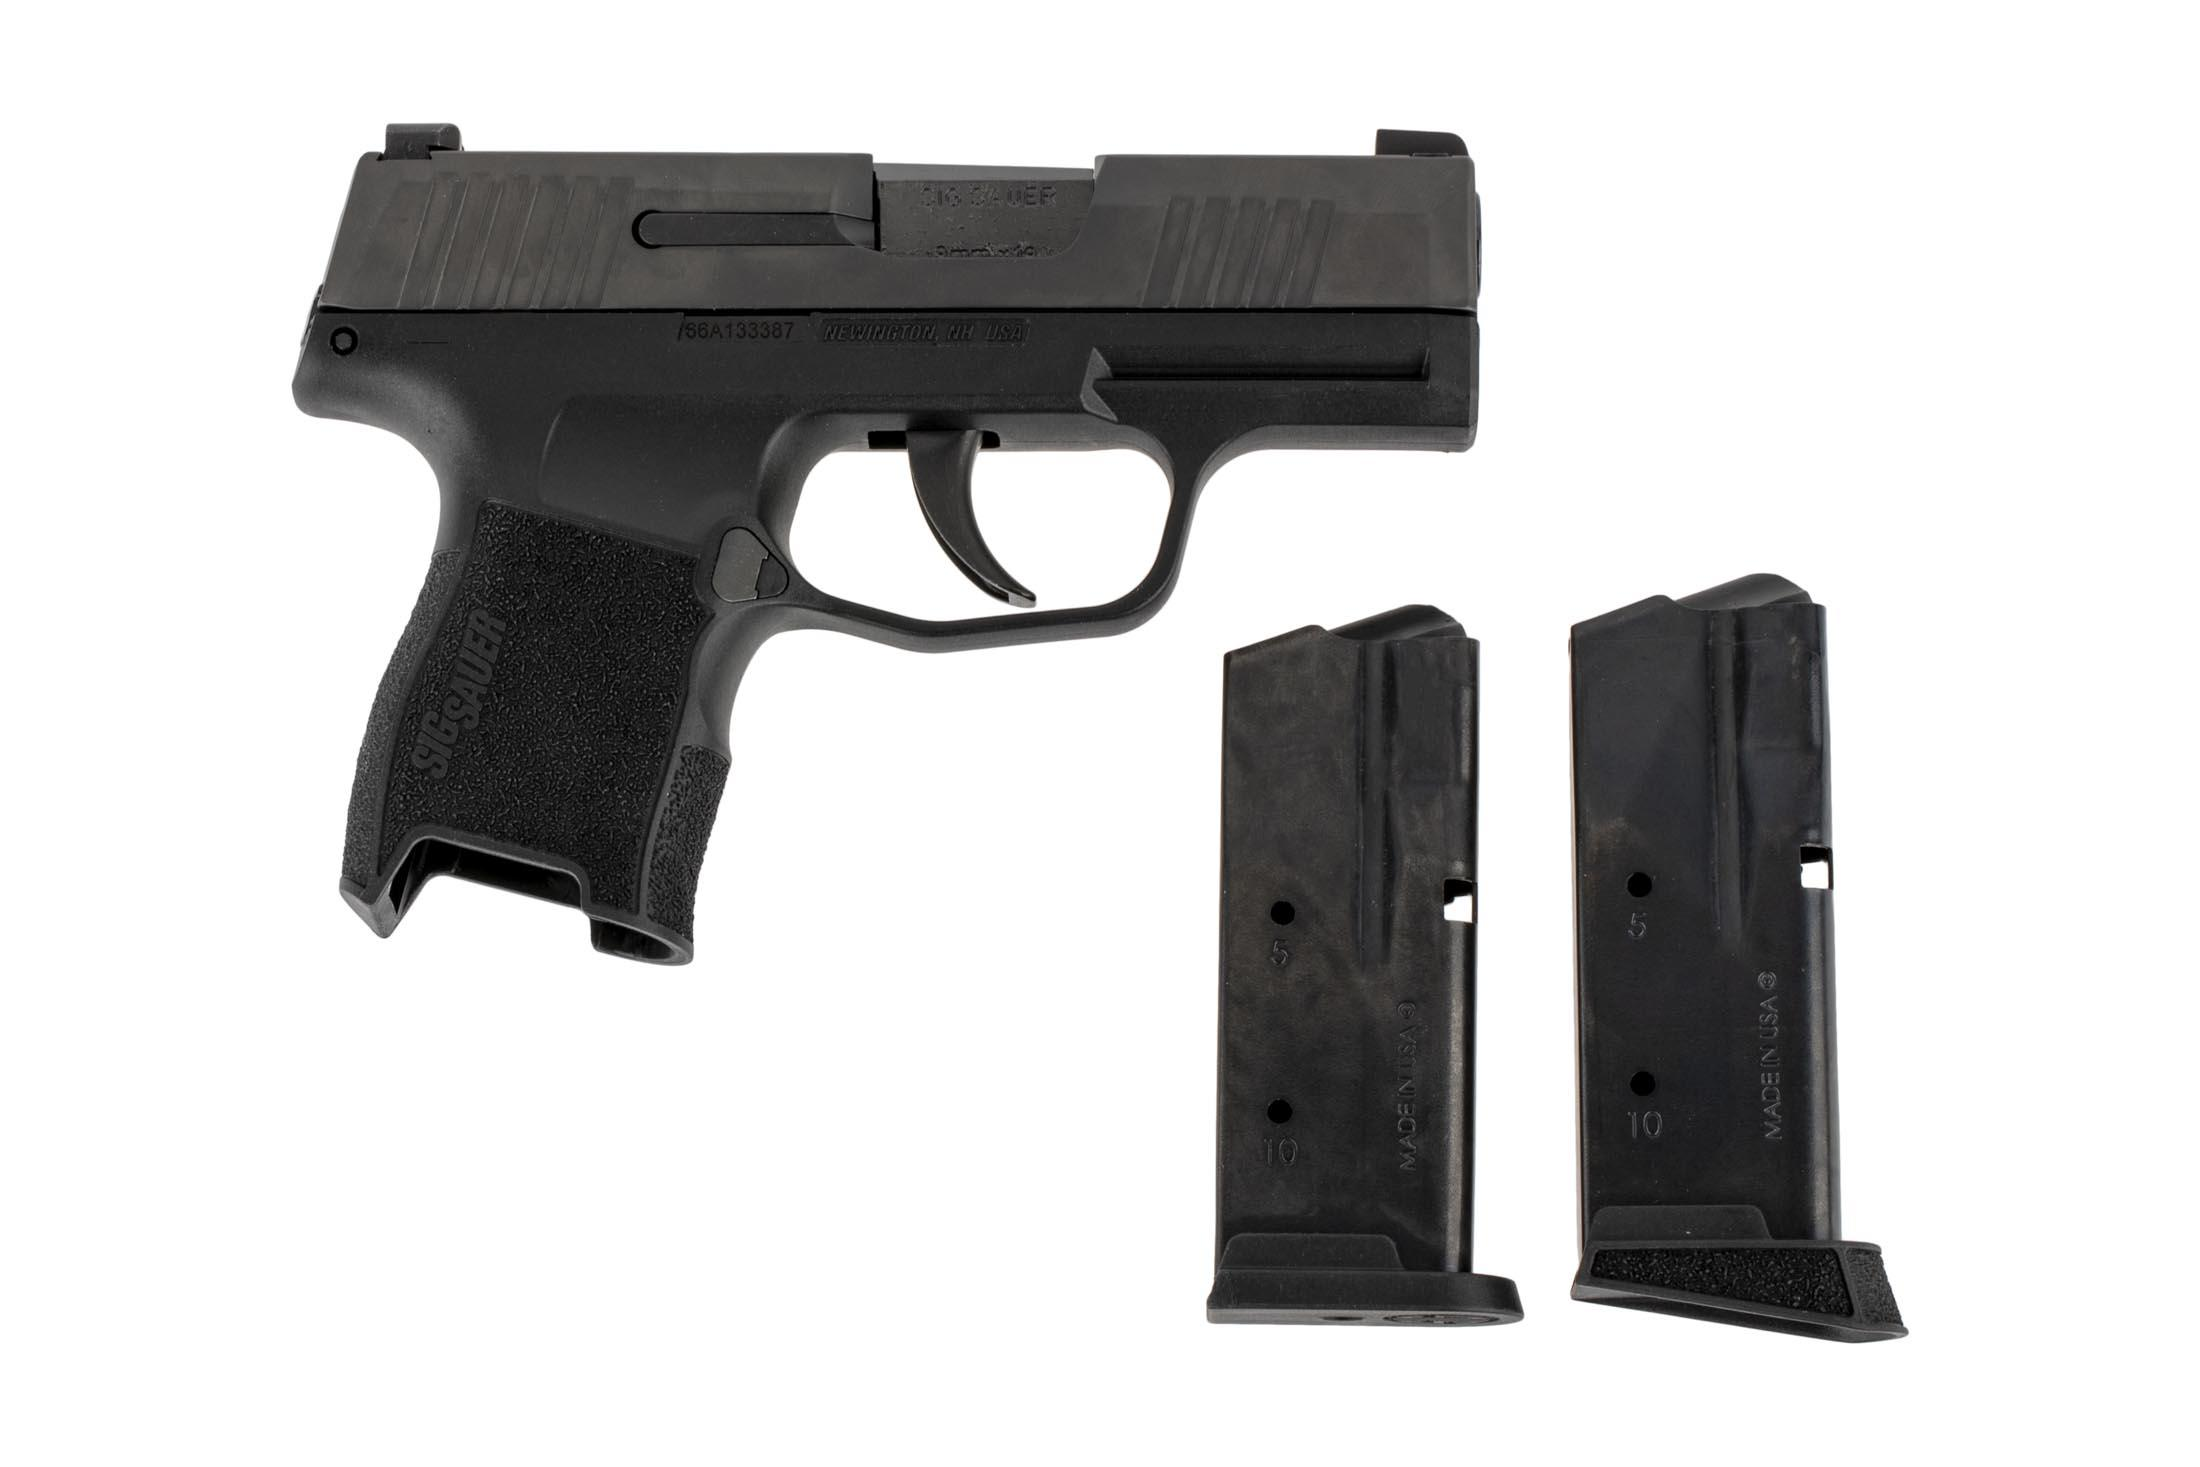 SIG Sauer P365 subcompact 9mm handgun includes two magazines.